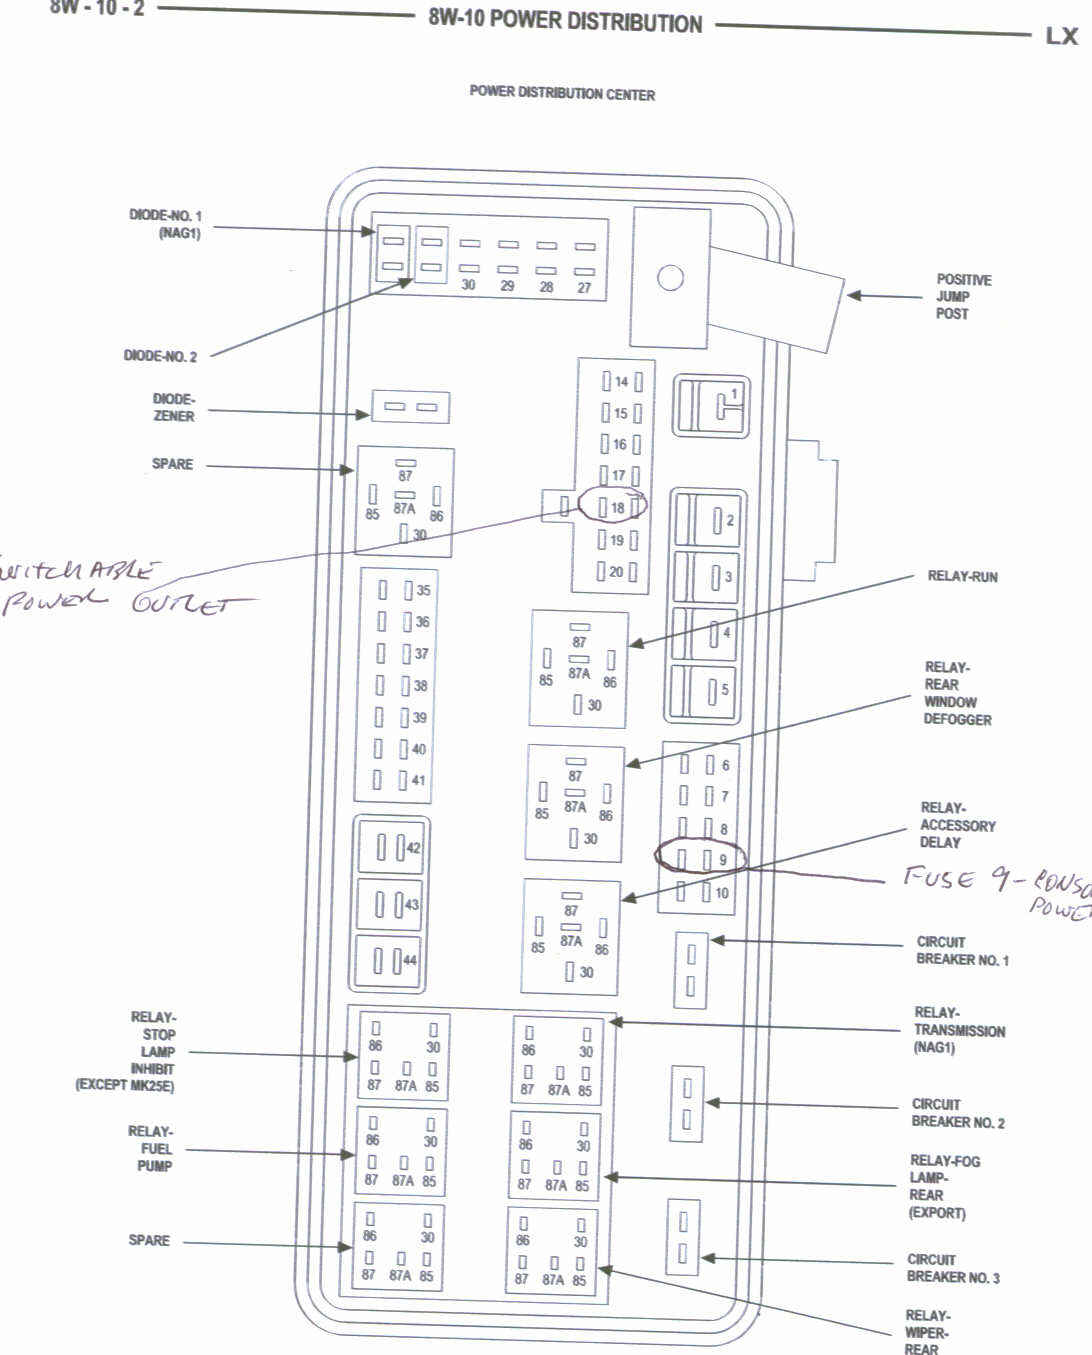 2008 Chrysler Sebring Fuse Box Diagram : Sebring Fuse Box